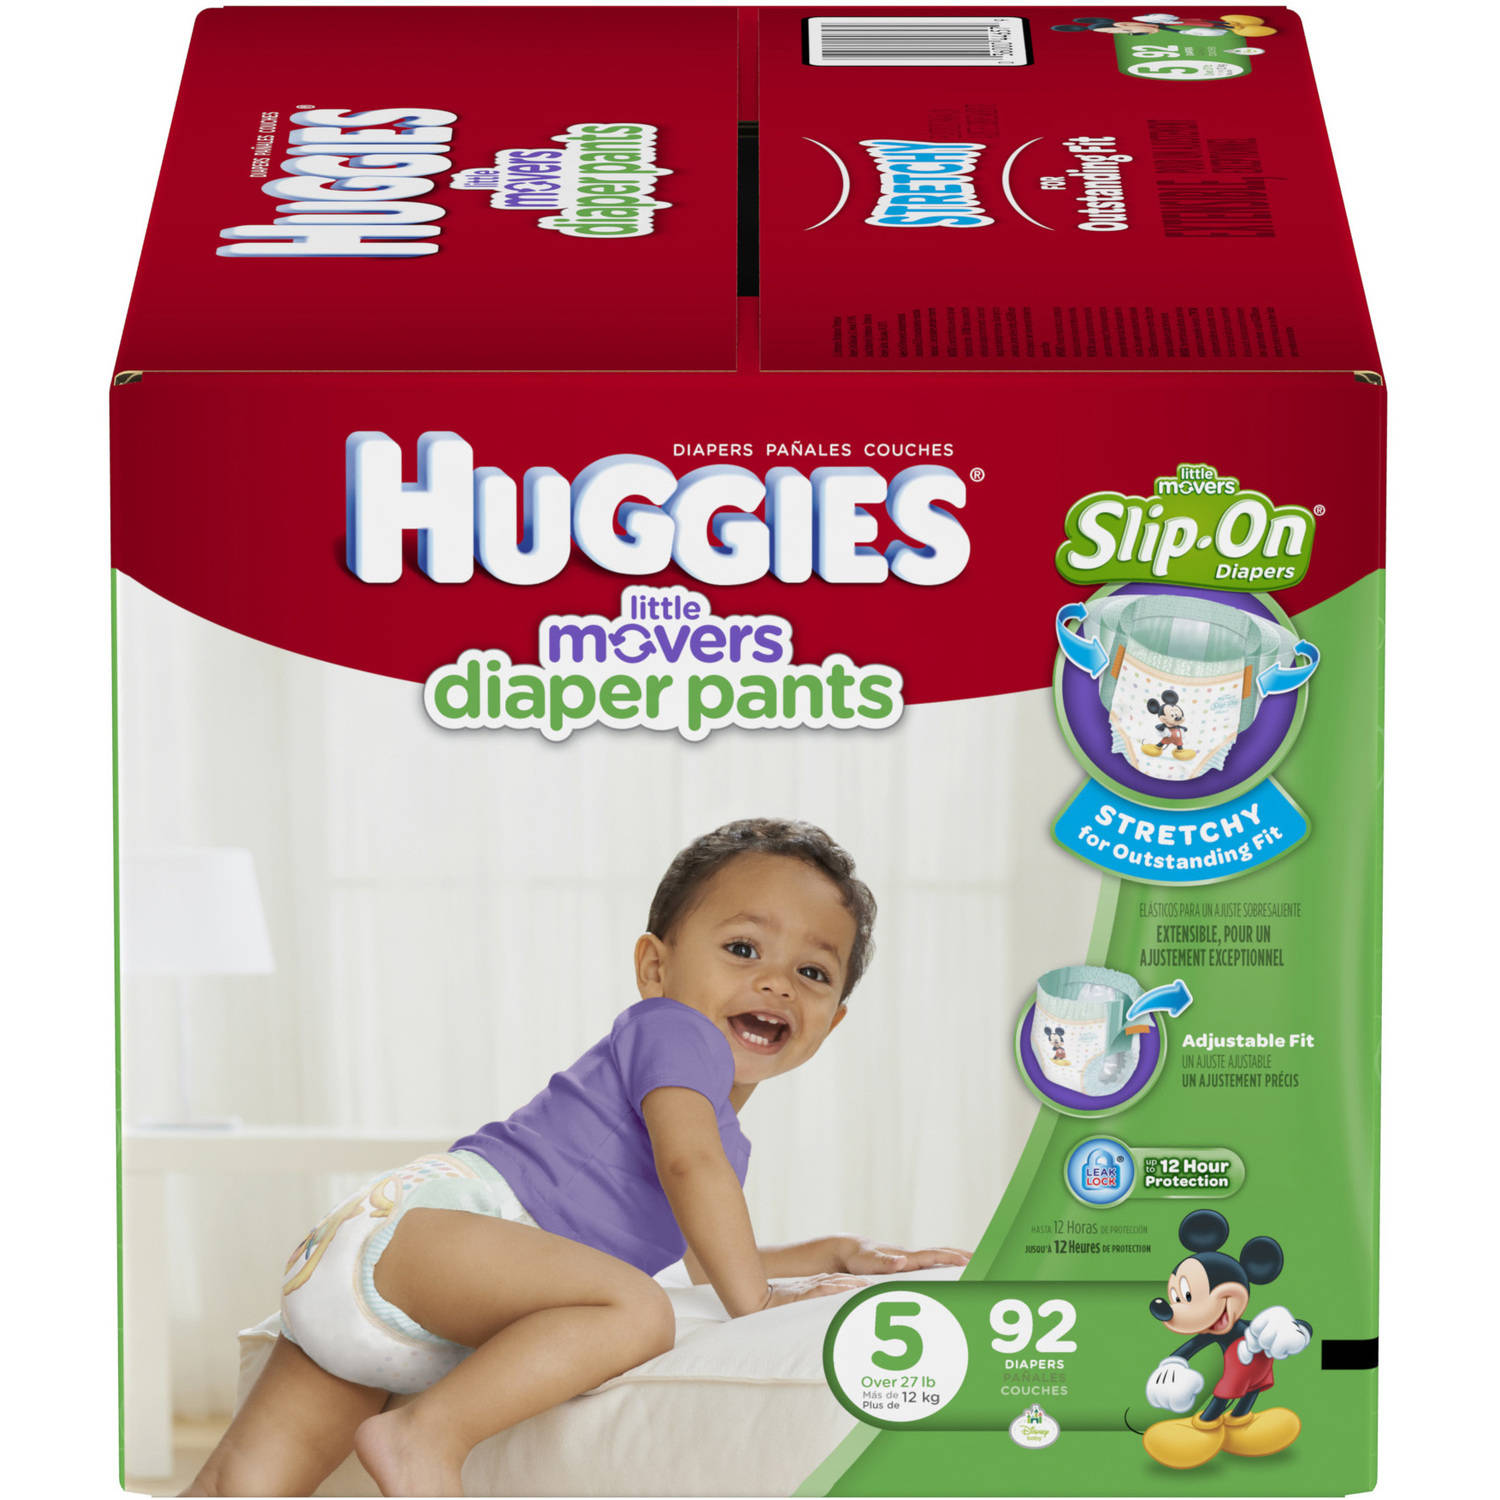 HUGGIES Little Movers Slip-On Diaper Pants, Size 5, 92 Diapers ...